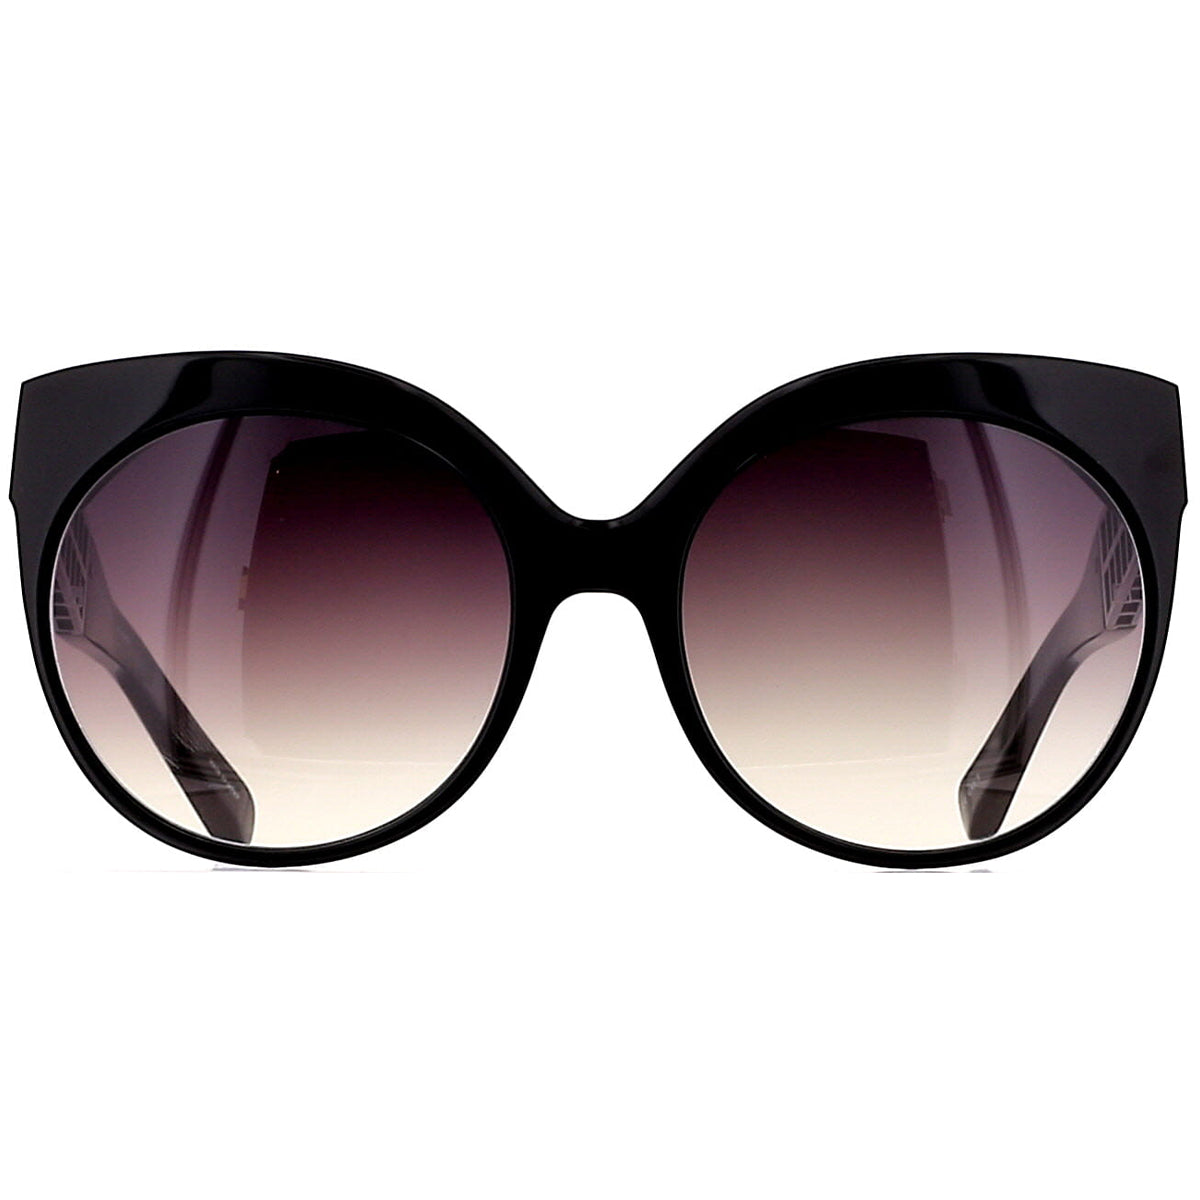 Linda Farrow Luxe LFL388 C4 Sun Black/ White Gold/ Grey